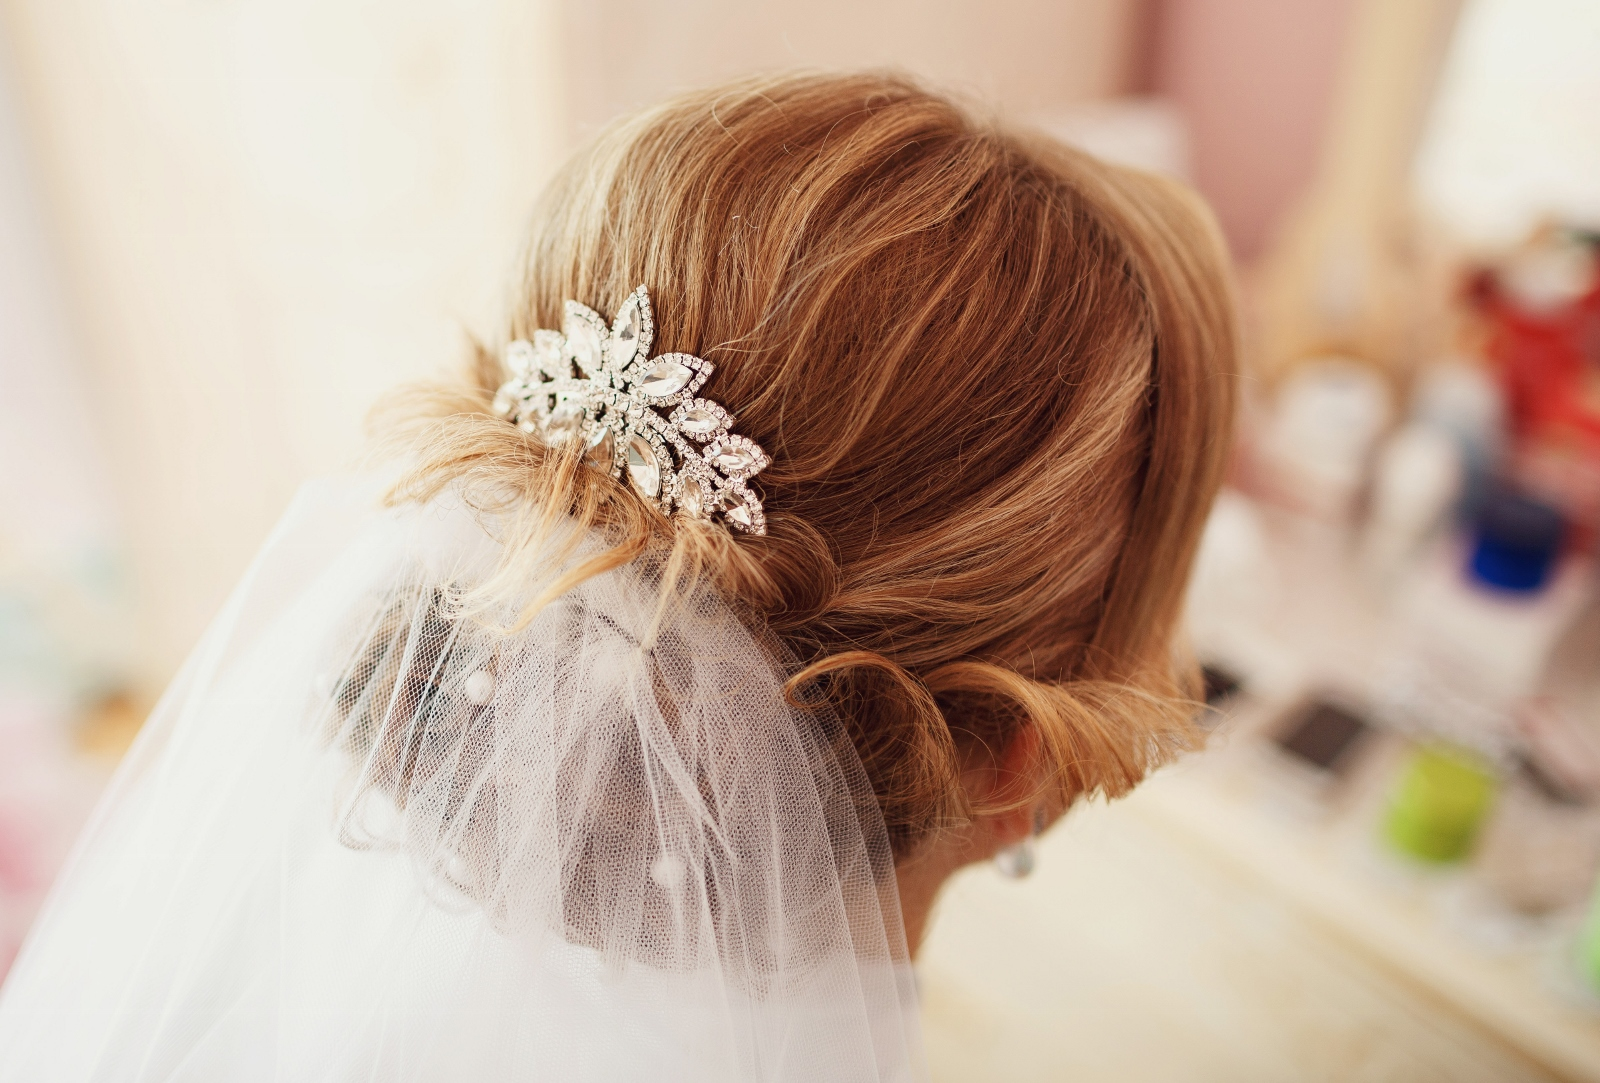 Bride is doing a hairstyle before the wedding